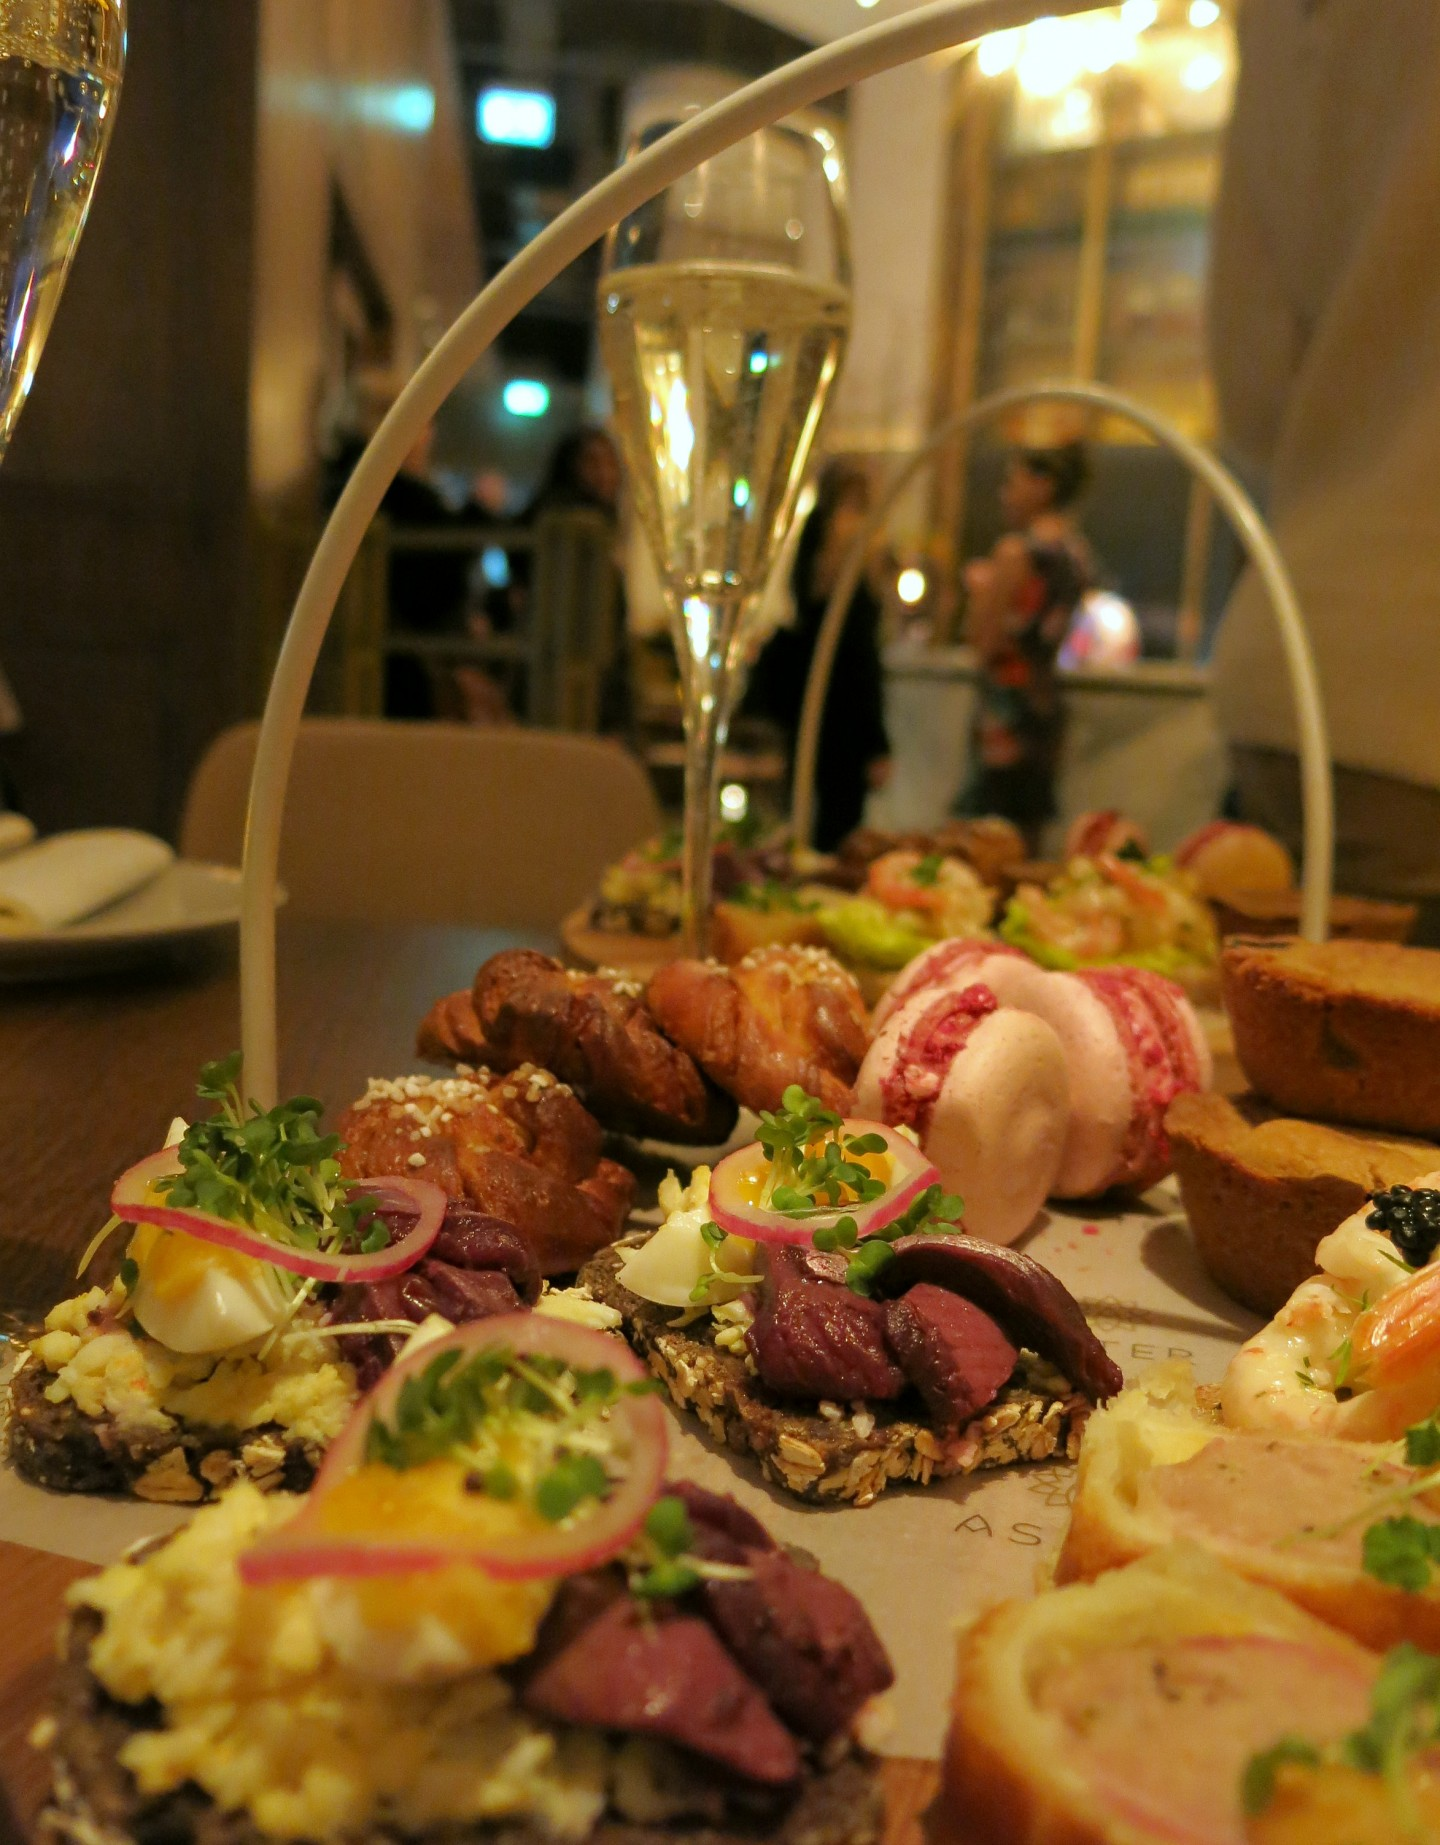 Nordic Afternoon Tea at Aster, Victoria